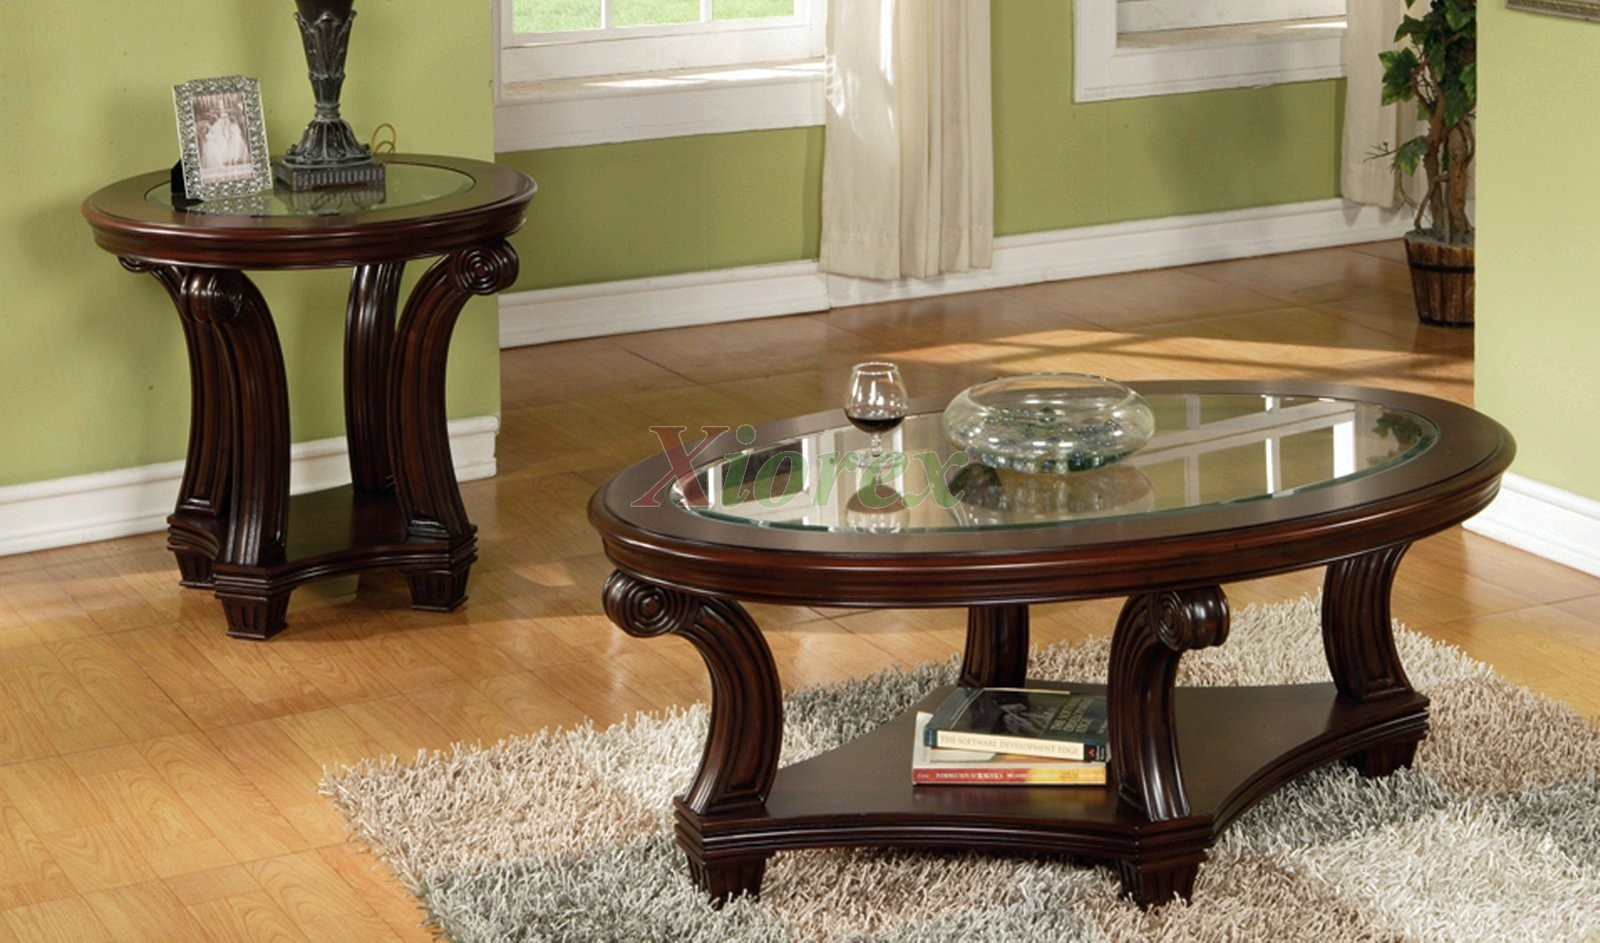 End Tables And Coffee Tables Sets Perseus Glass Top Wooden Modern Minimalist Industrial Style Rustic Wood Furn (Image 9 of 9)